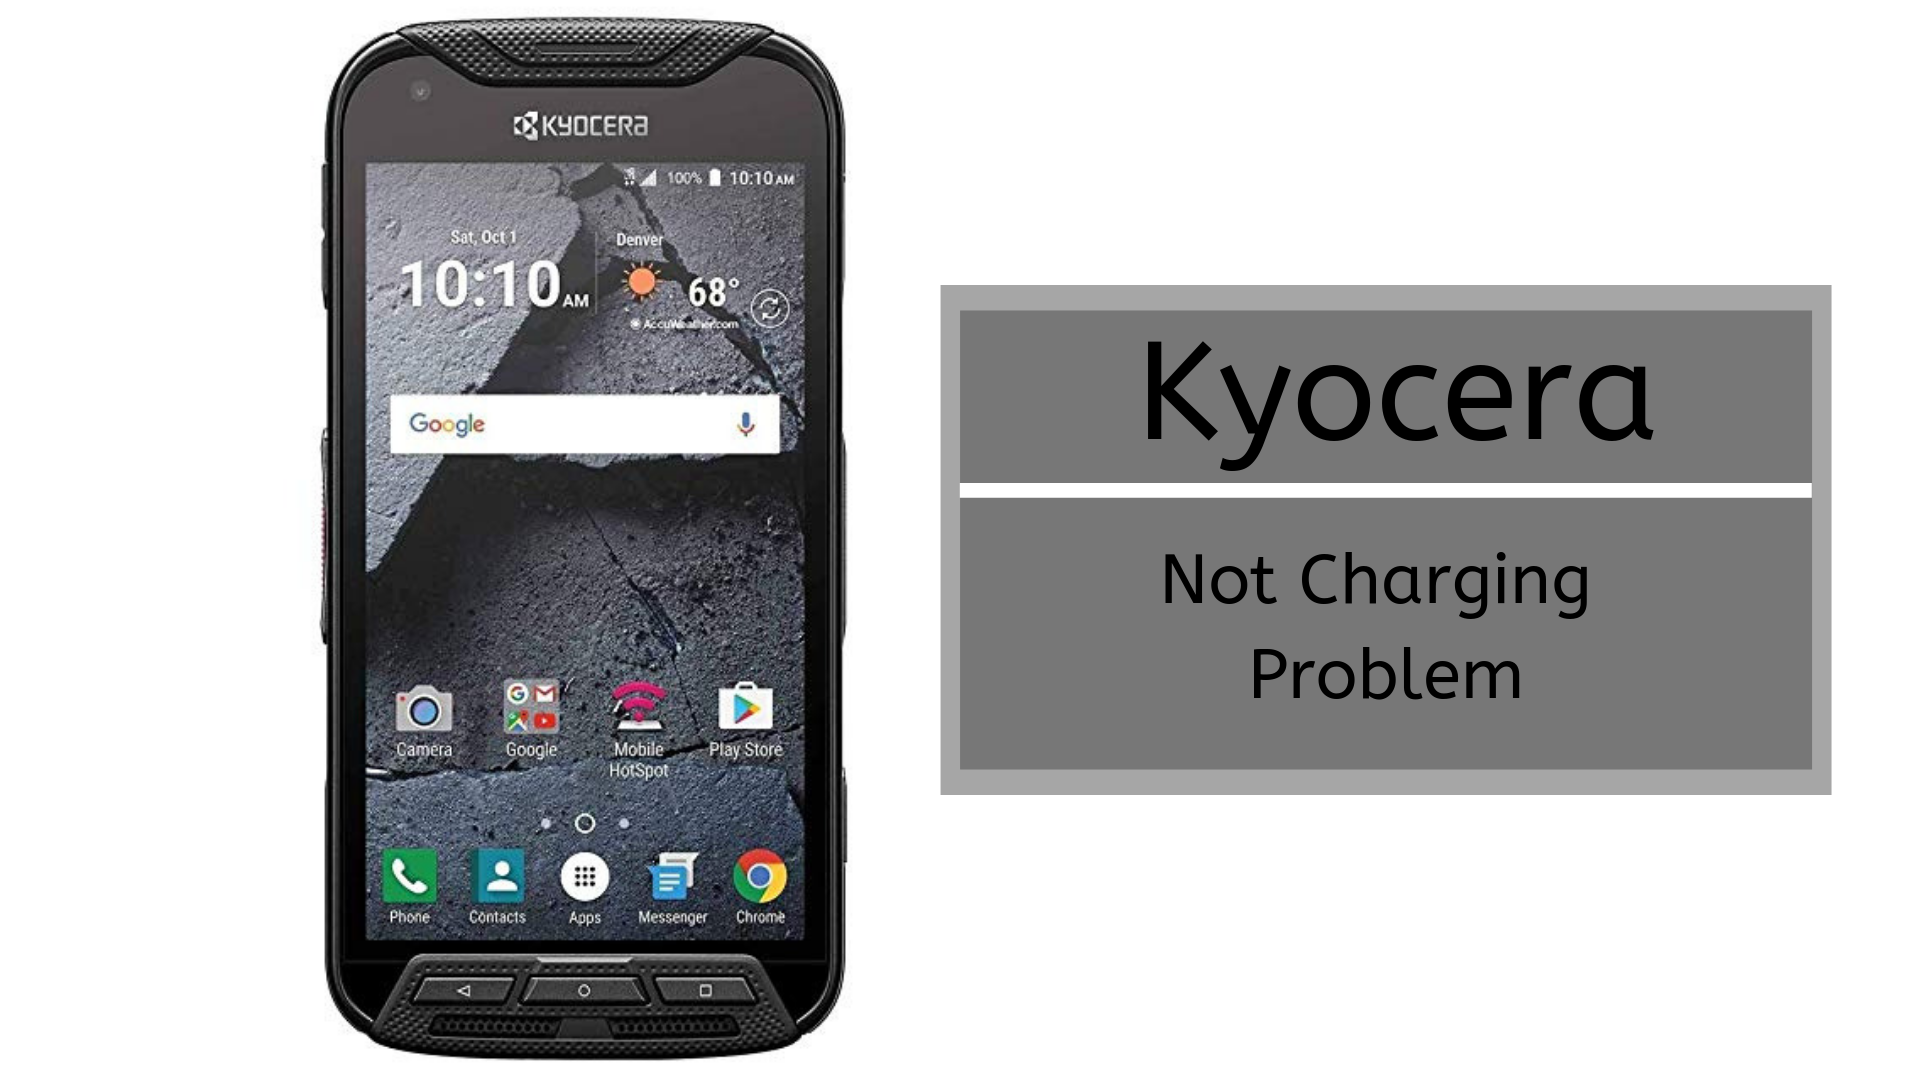 How To Fix Kyocera Not Charging Problem [Troubleshoot]